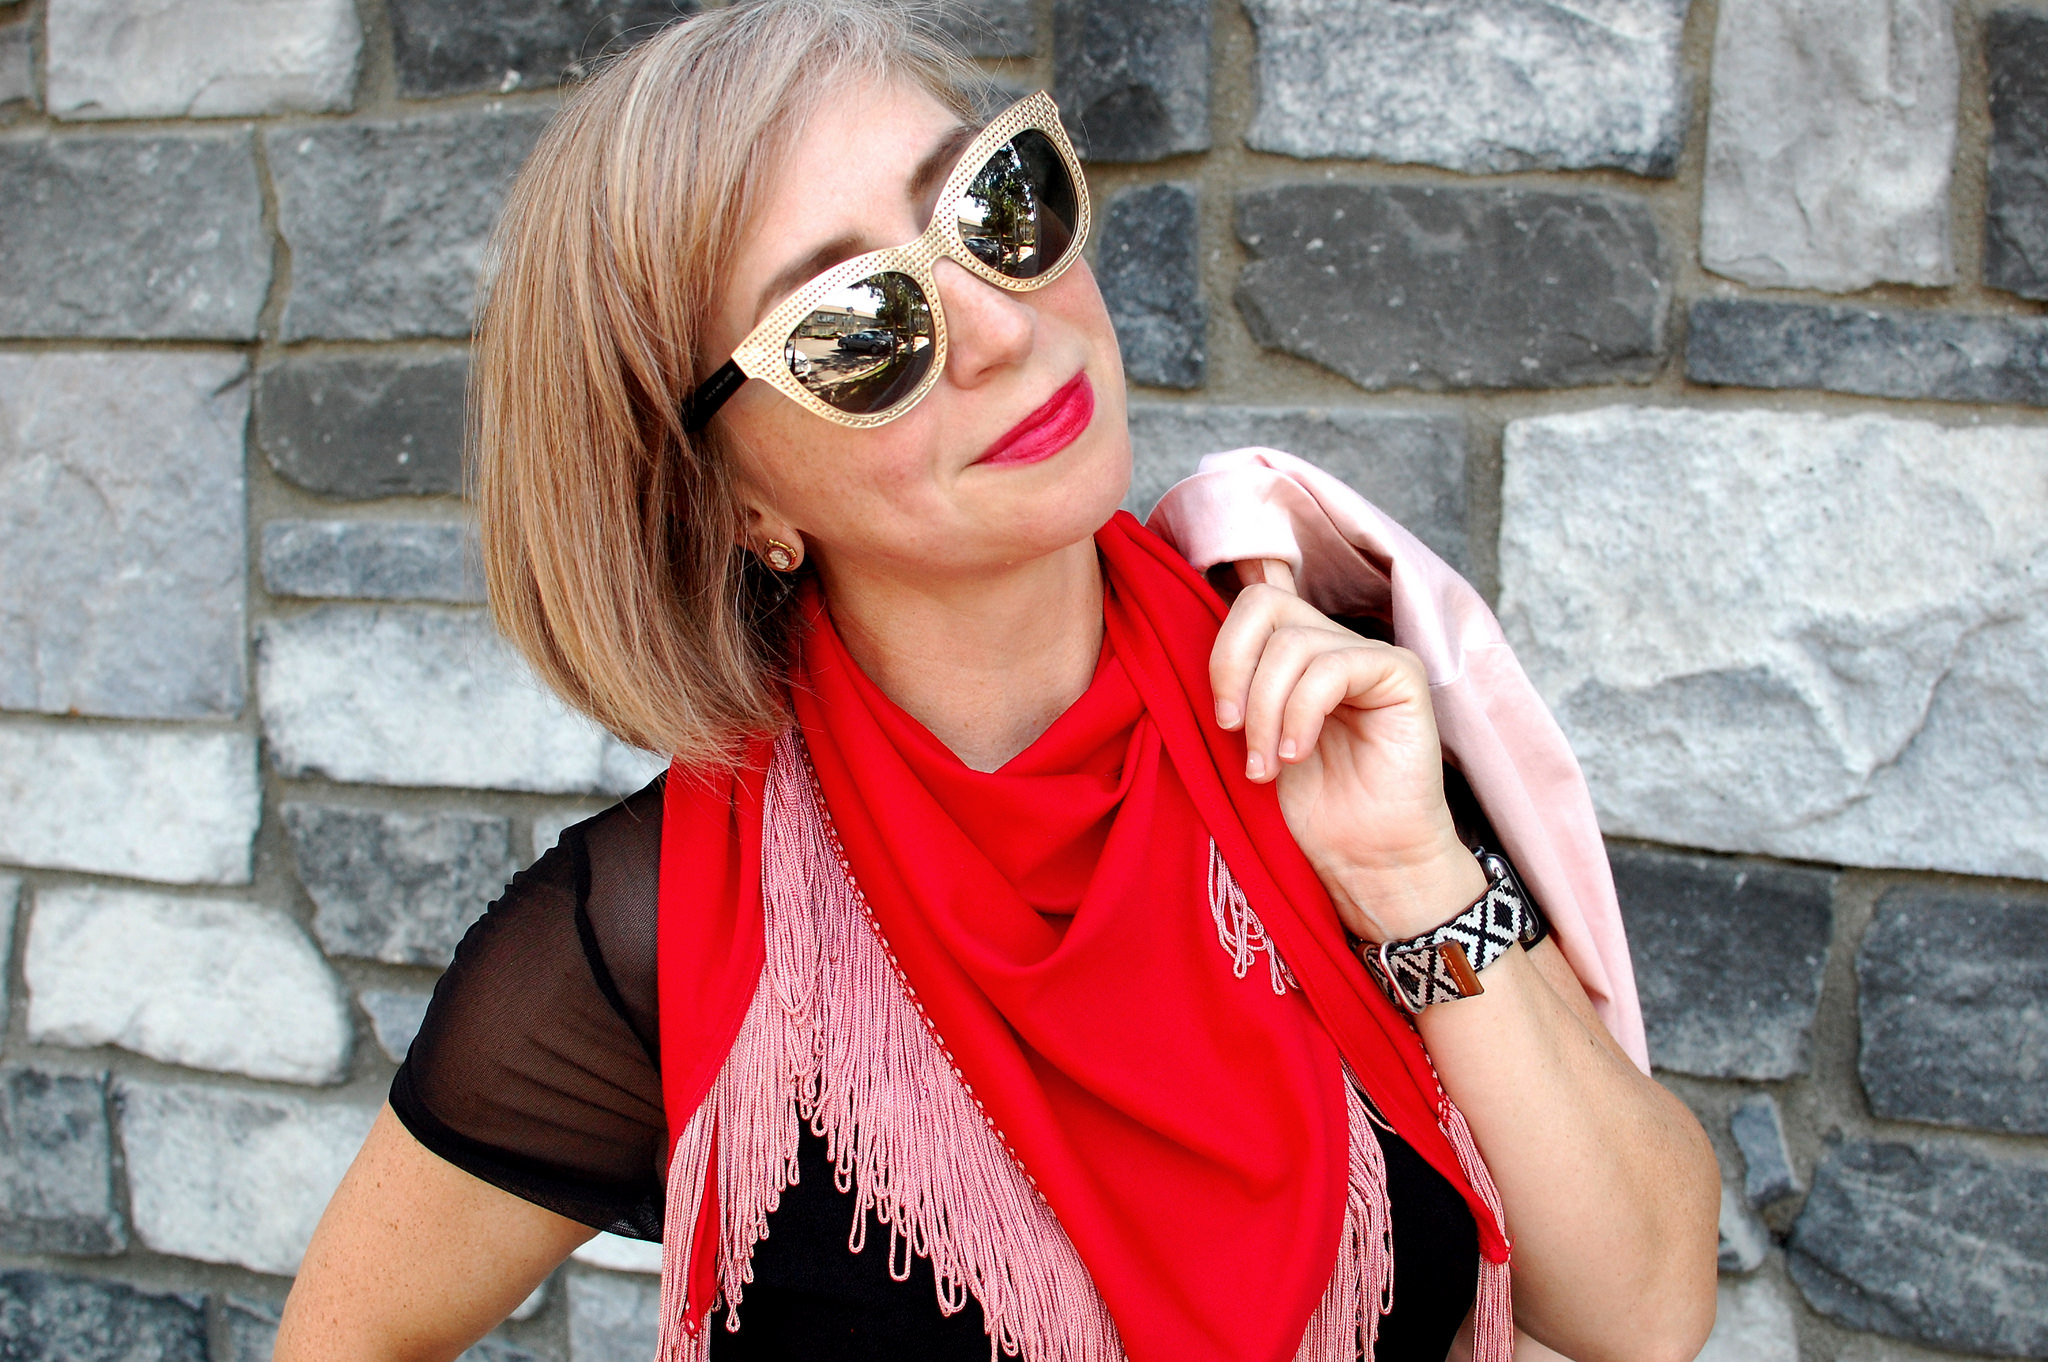 scarf red pink piano fringe daily outfit blog ootd whatiwore2day